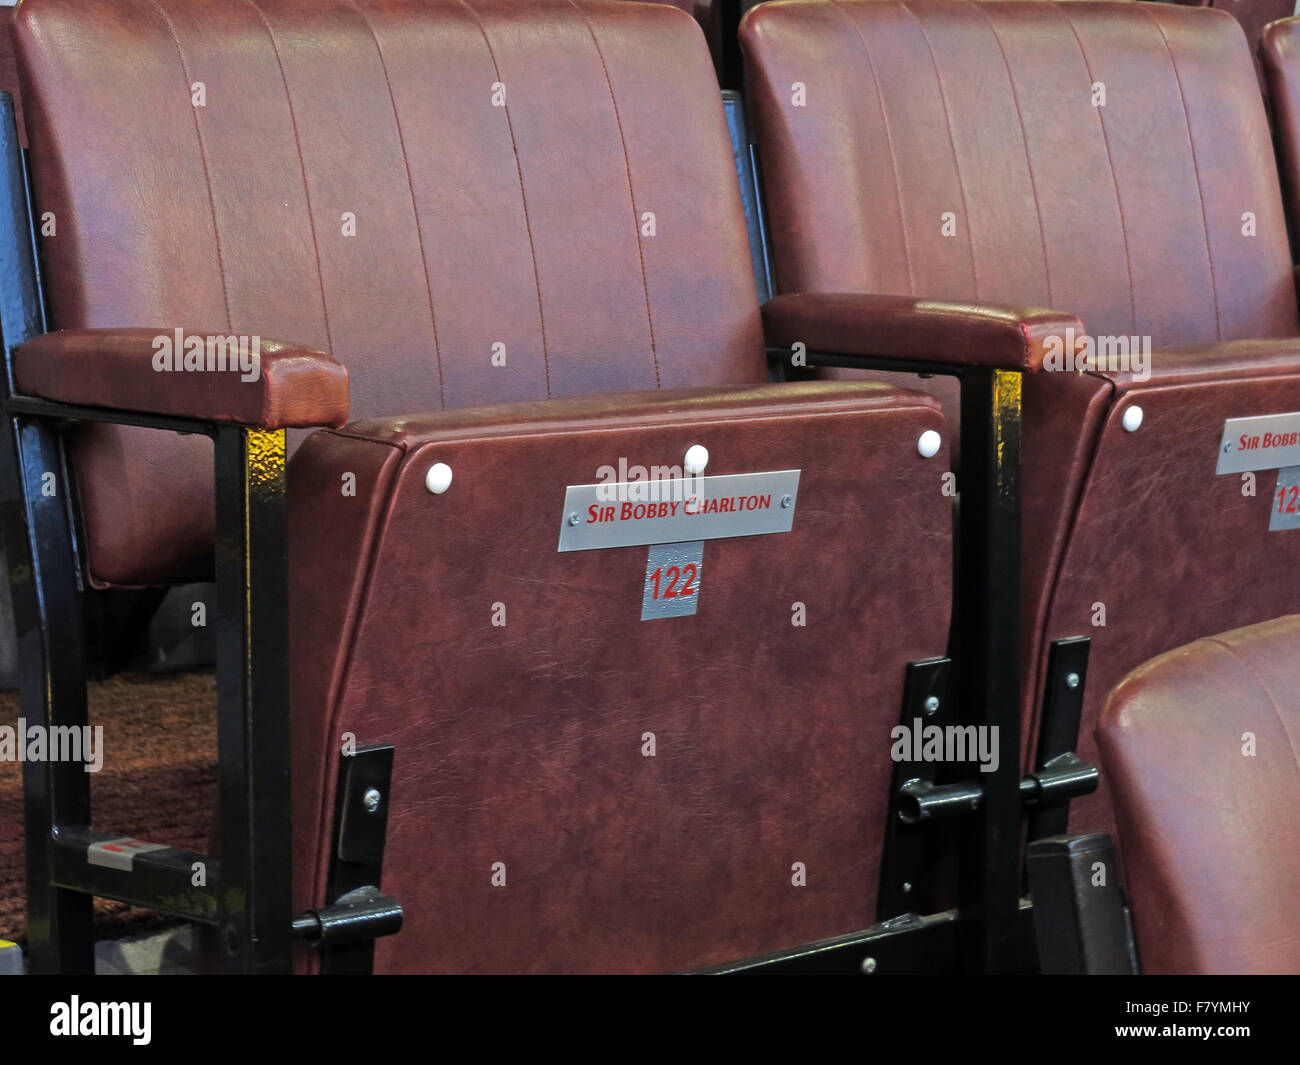 Sir Bobby Charltons seat at MUFC, directors area, Old Trafford, Manchester - Stock Image